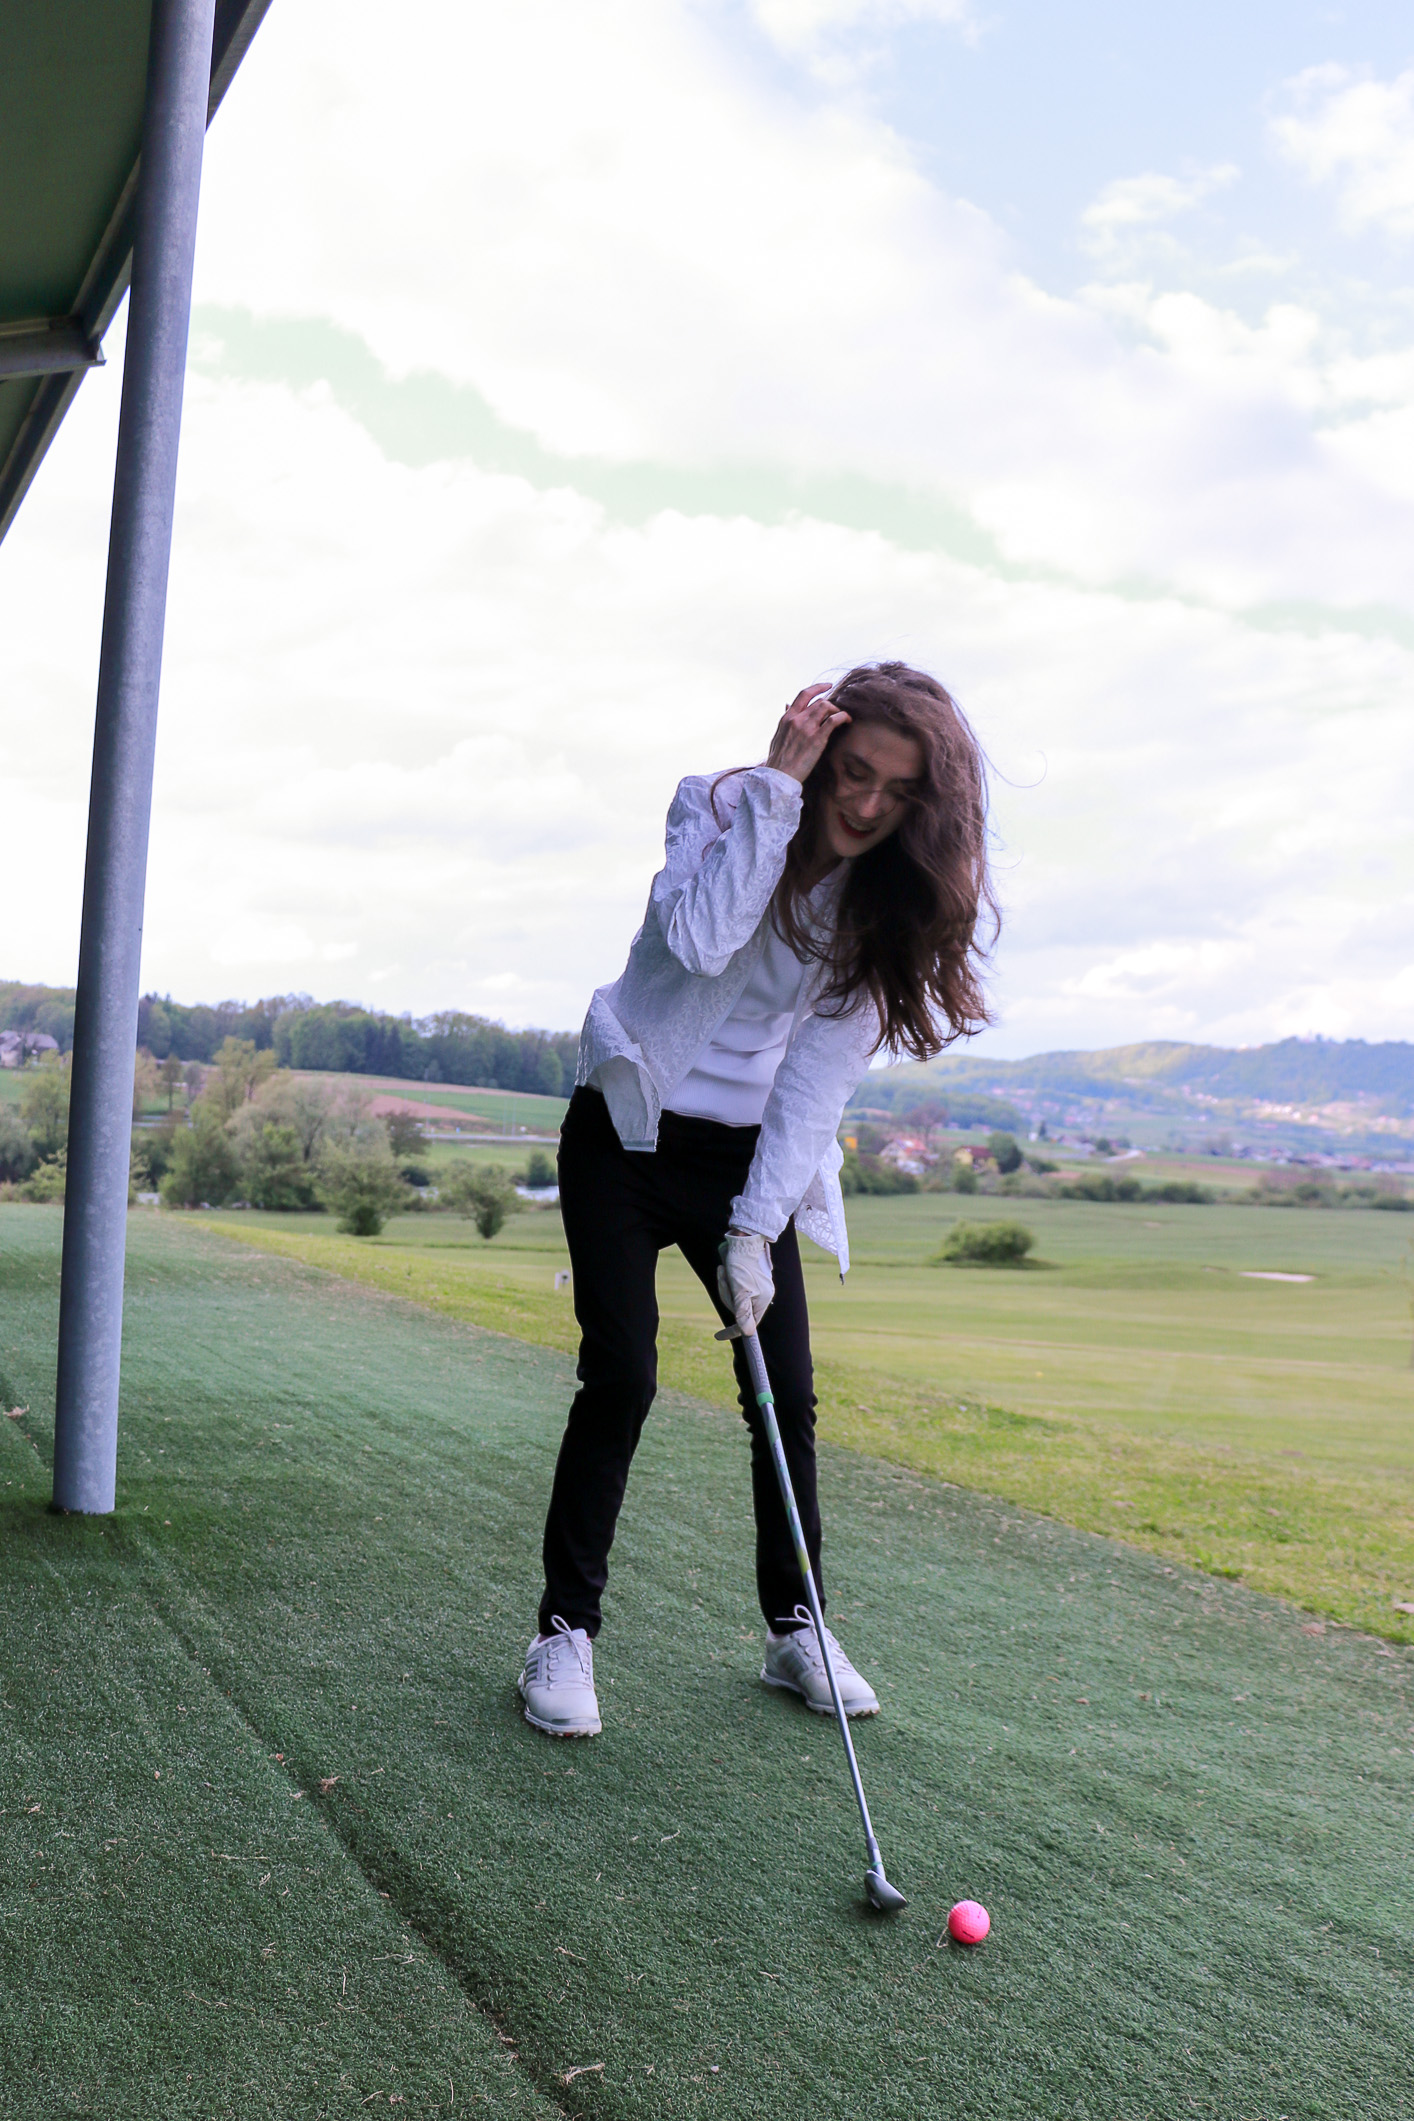 Fashion blogger Veronika Lipar of Brunette From Wall Street sharing where to get the most fashionable golf clothes